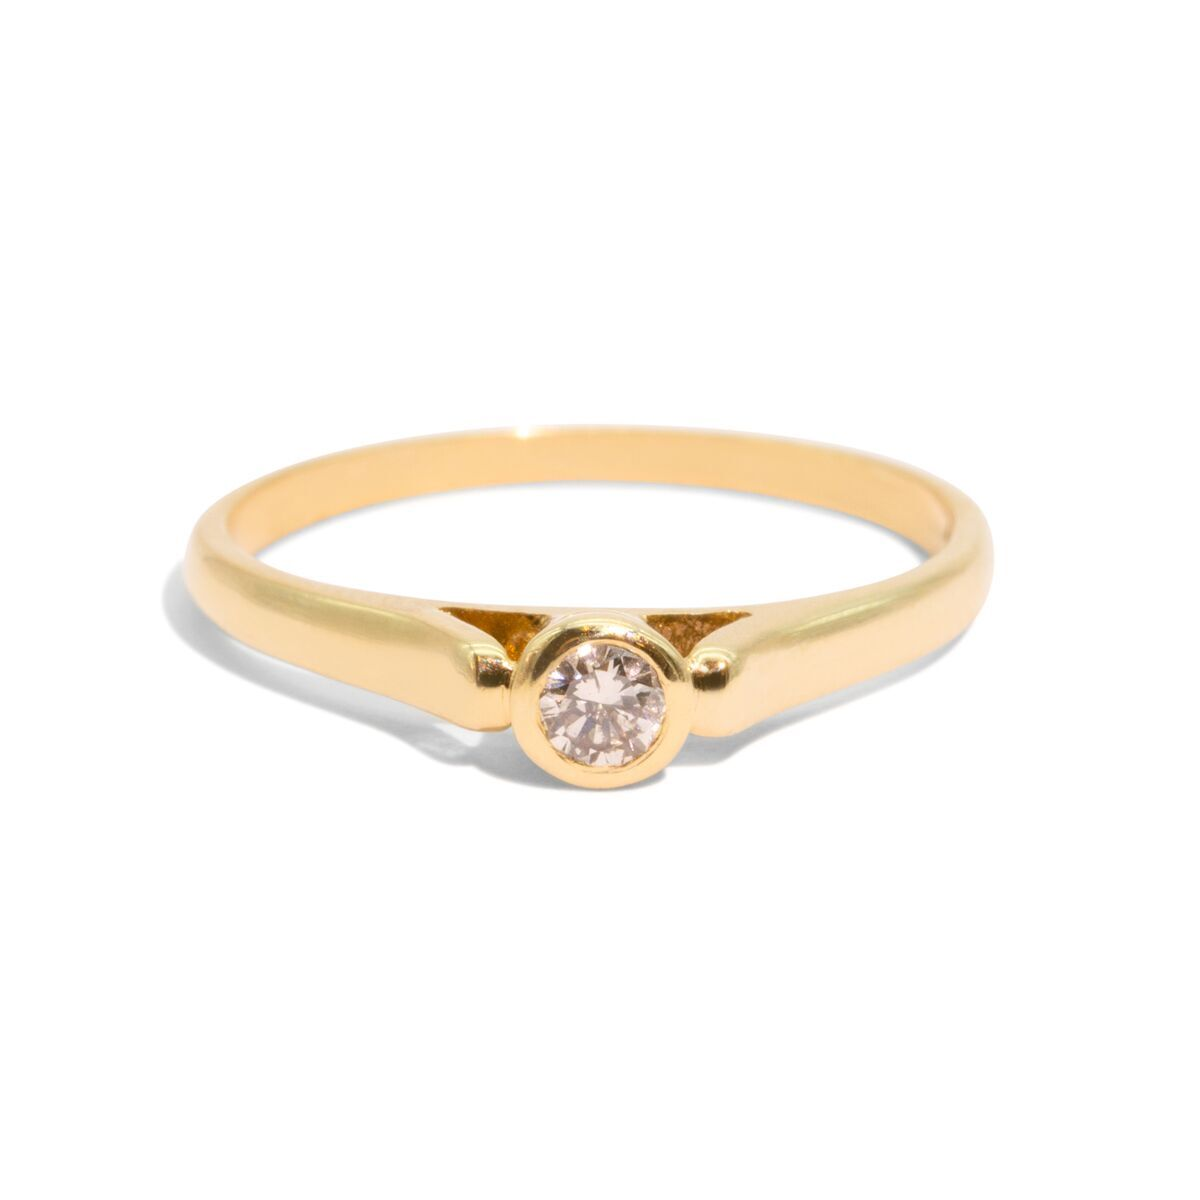 The Skylar Vintage Diamond Ring